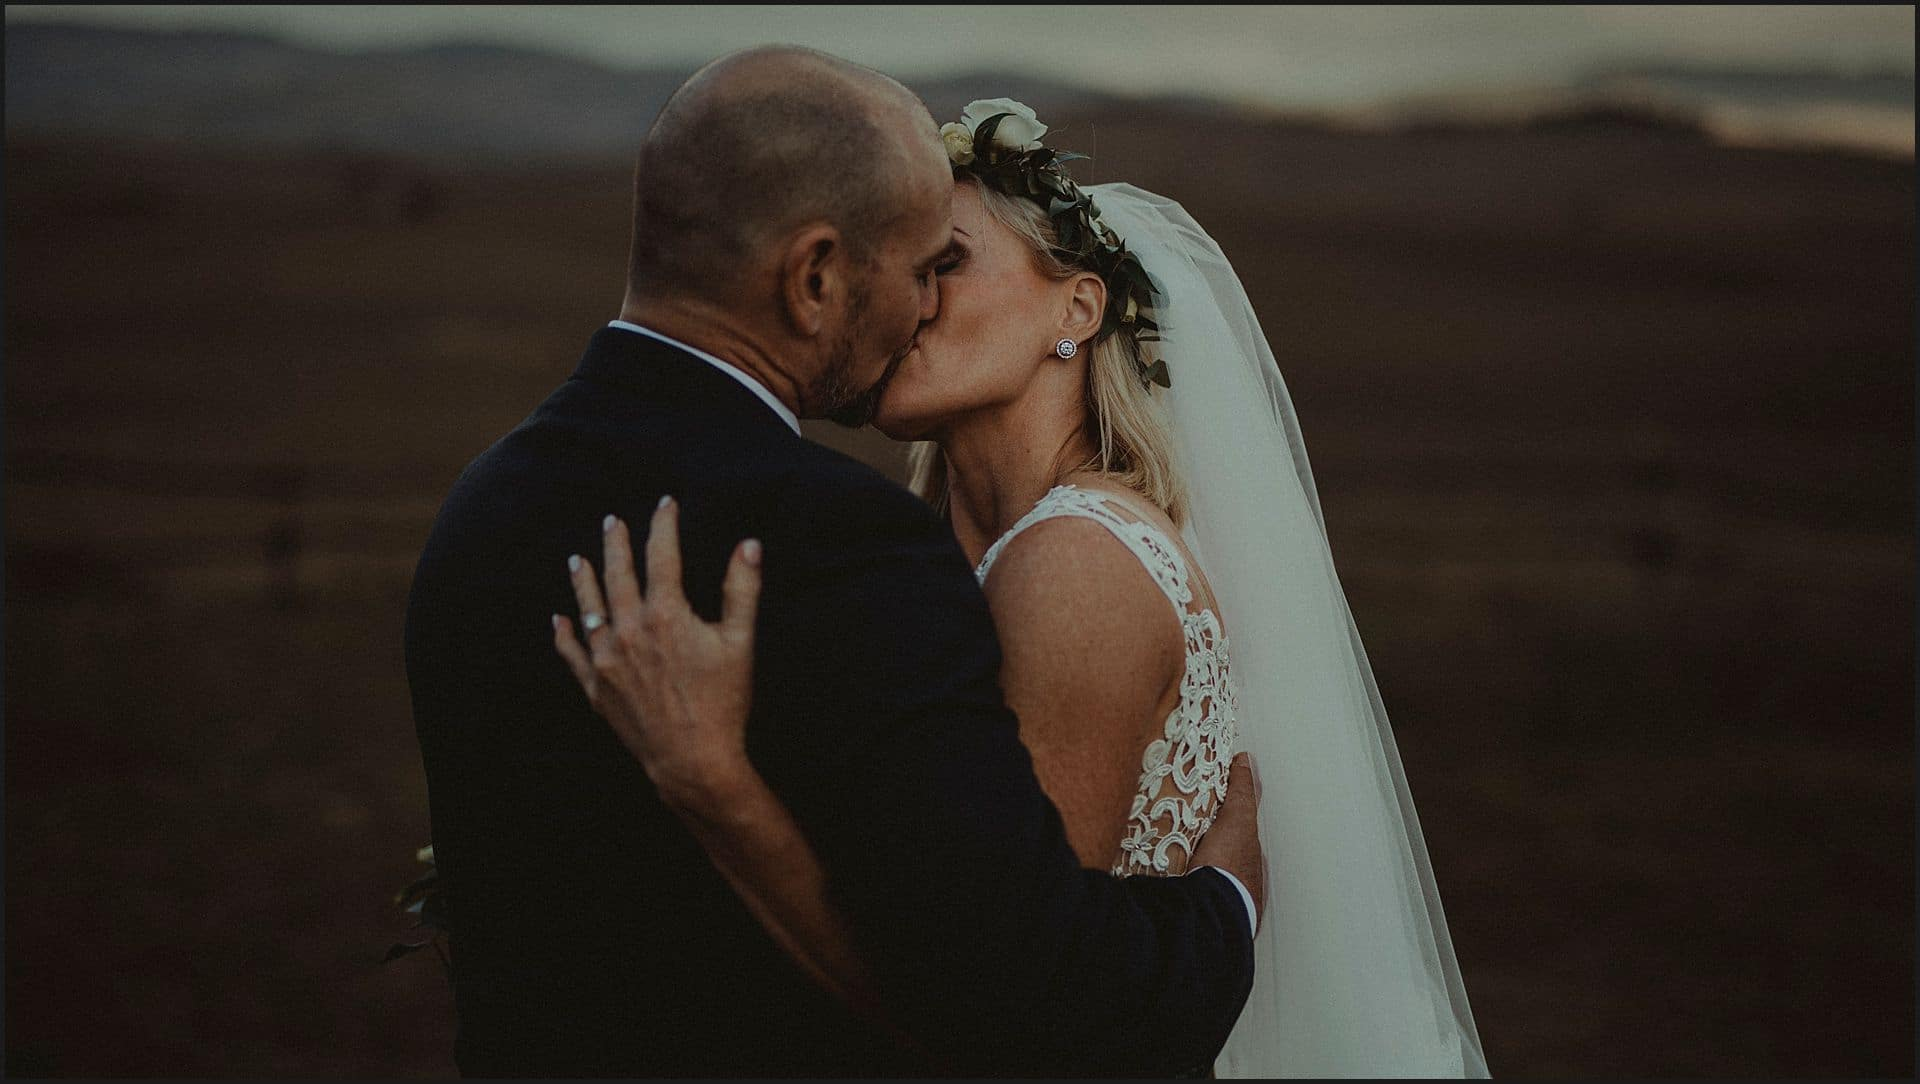 bride and groom, kiss, intimate, elopement photographer, wedding in italy, locanda in tuscany, val d'orcia